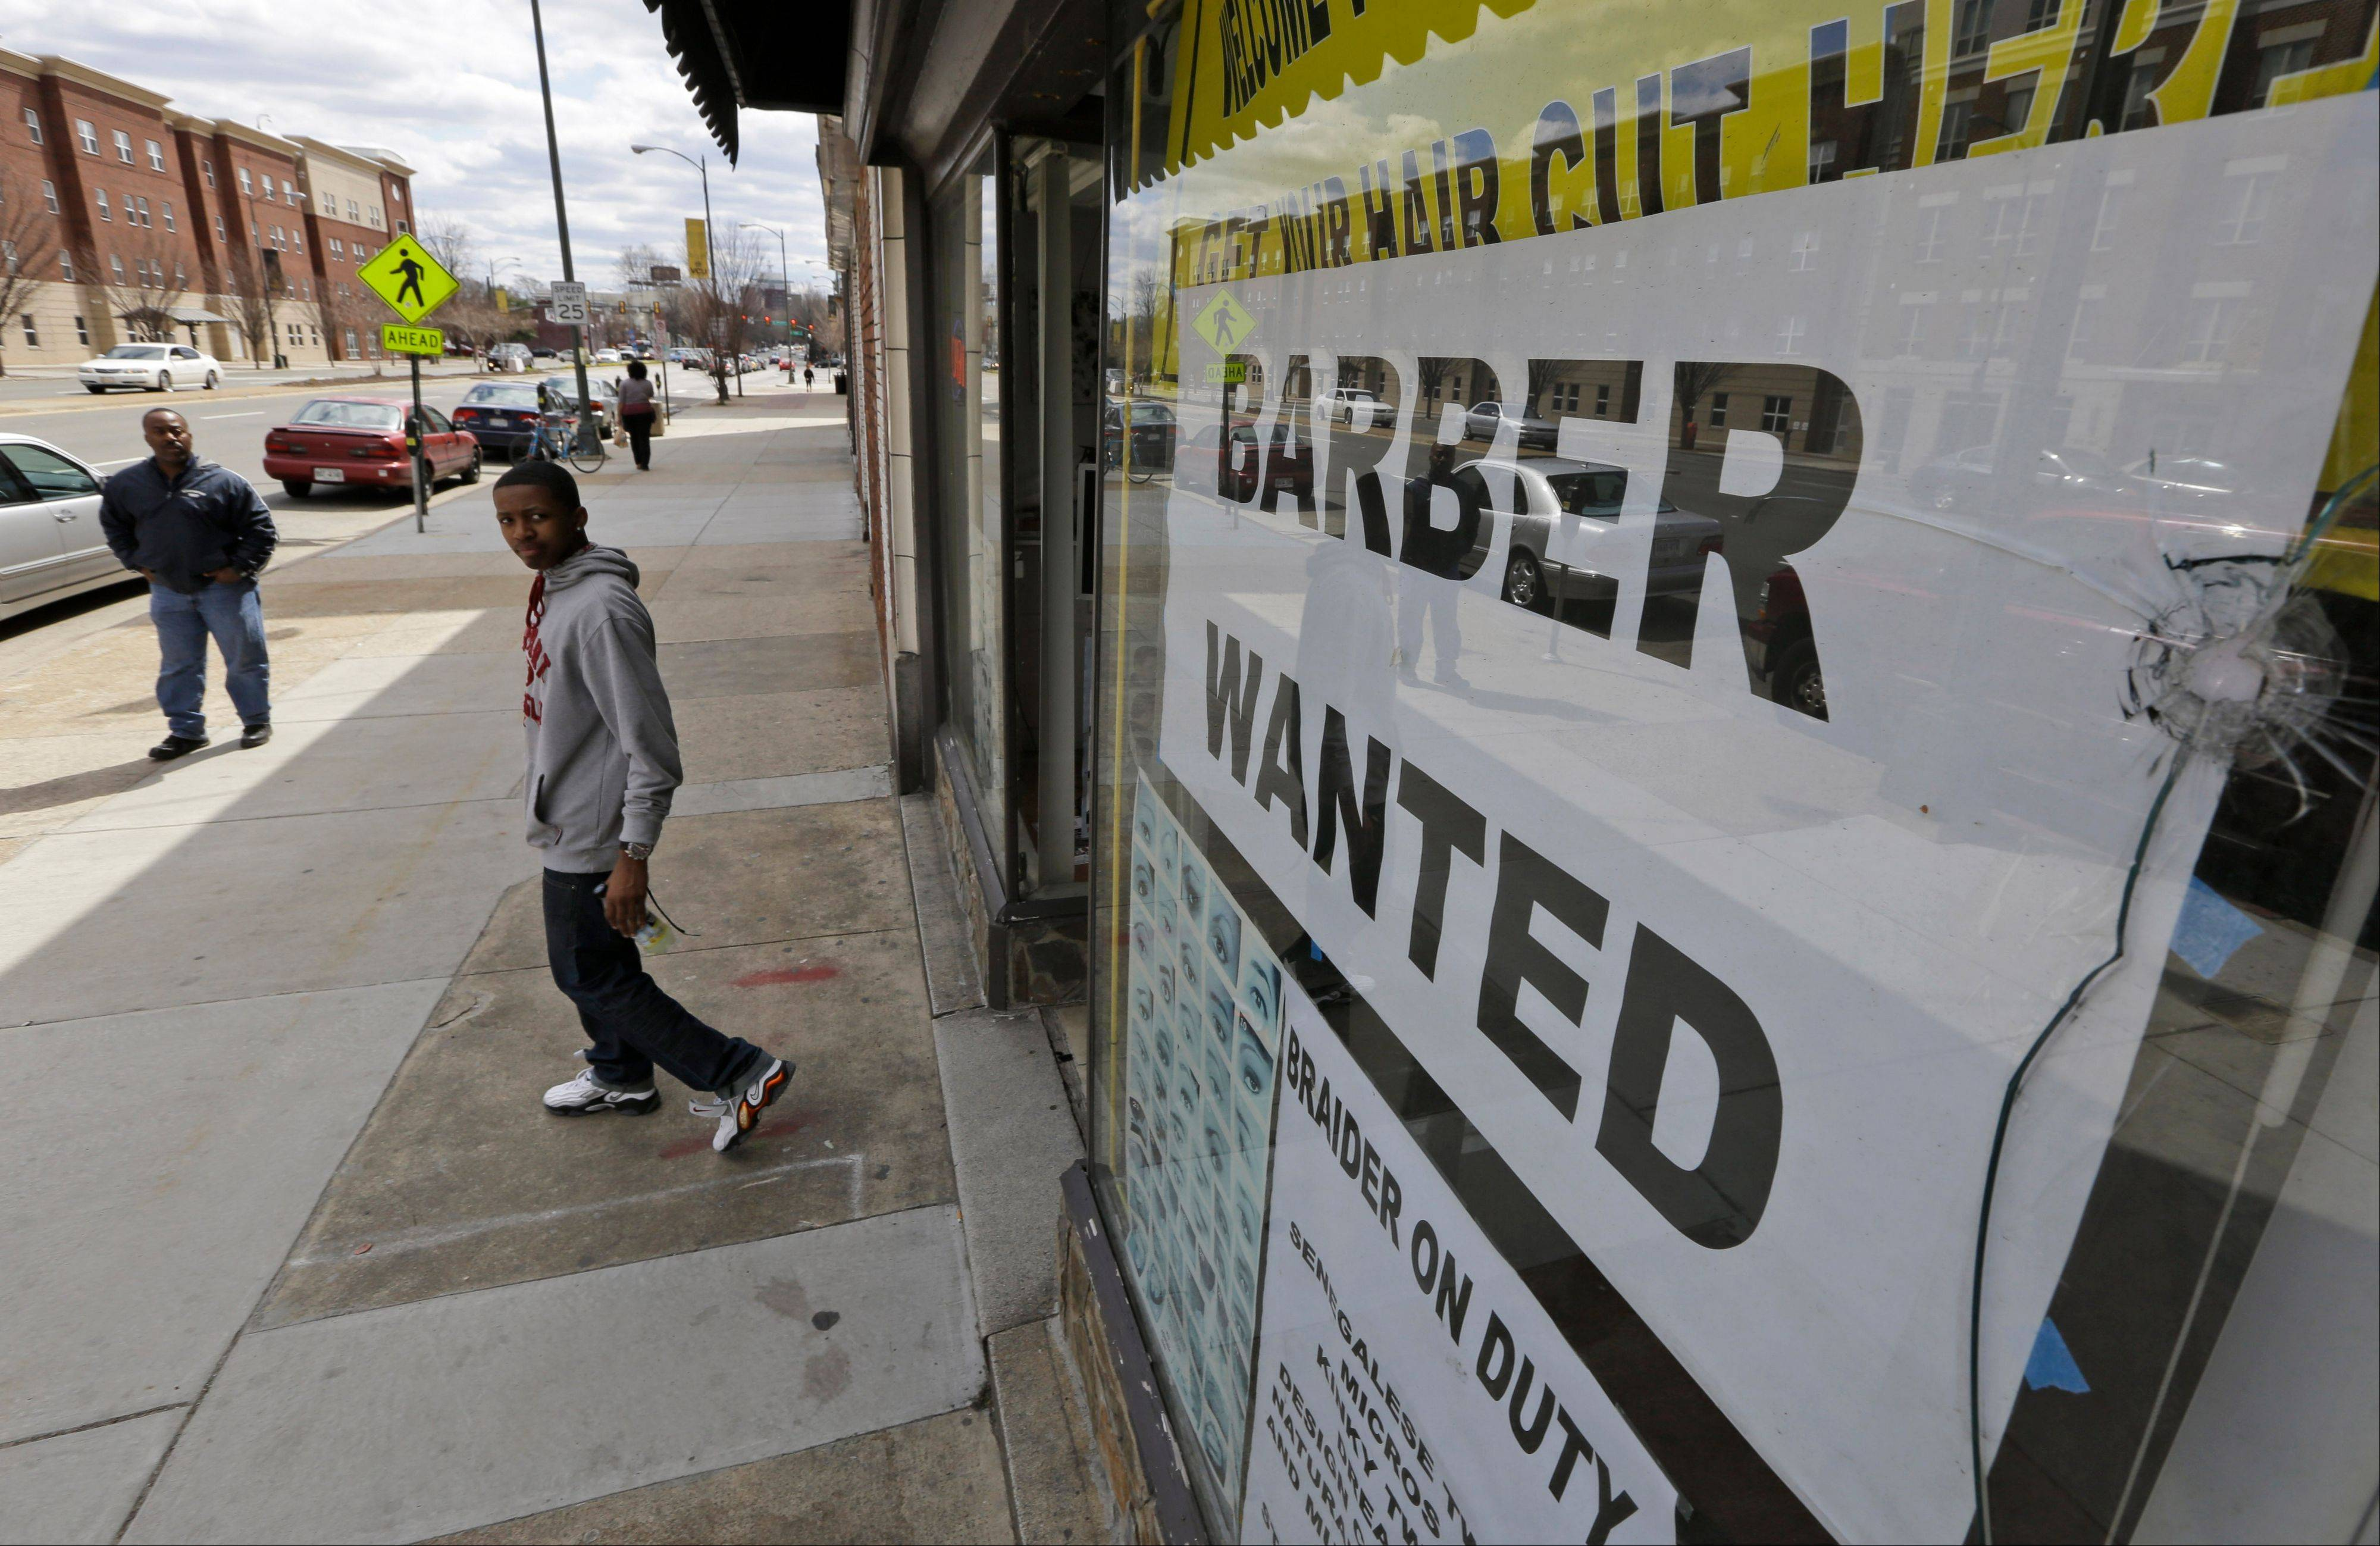 This March 29 photo shows a help wanted sign at a barber shop in Richmond, Va. U.S. employers added just 88,000 jobs in March, the fewest in nine months and a sharp retreat after a period of strong hiring. Many discouraged Americans are giving up the job hunt for school, retirement and disability.